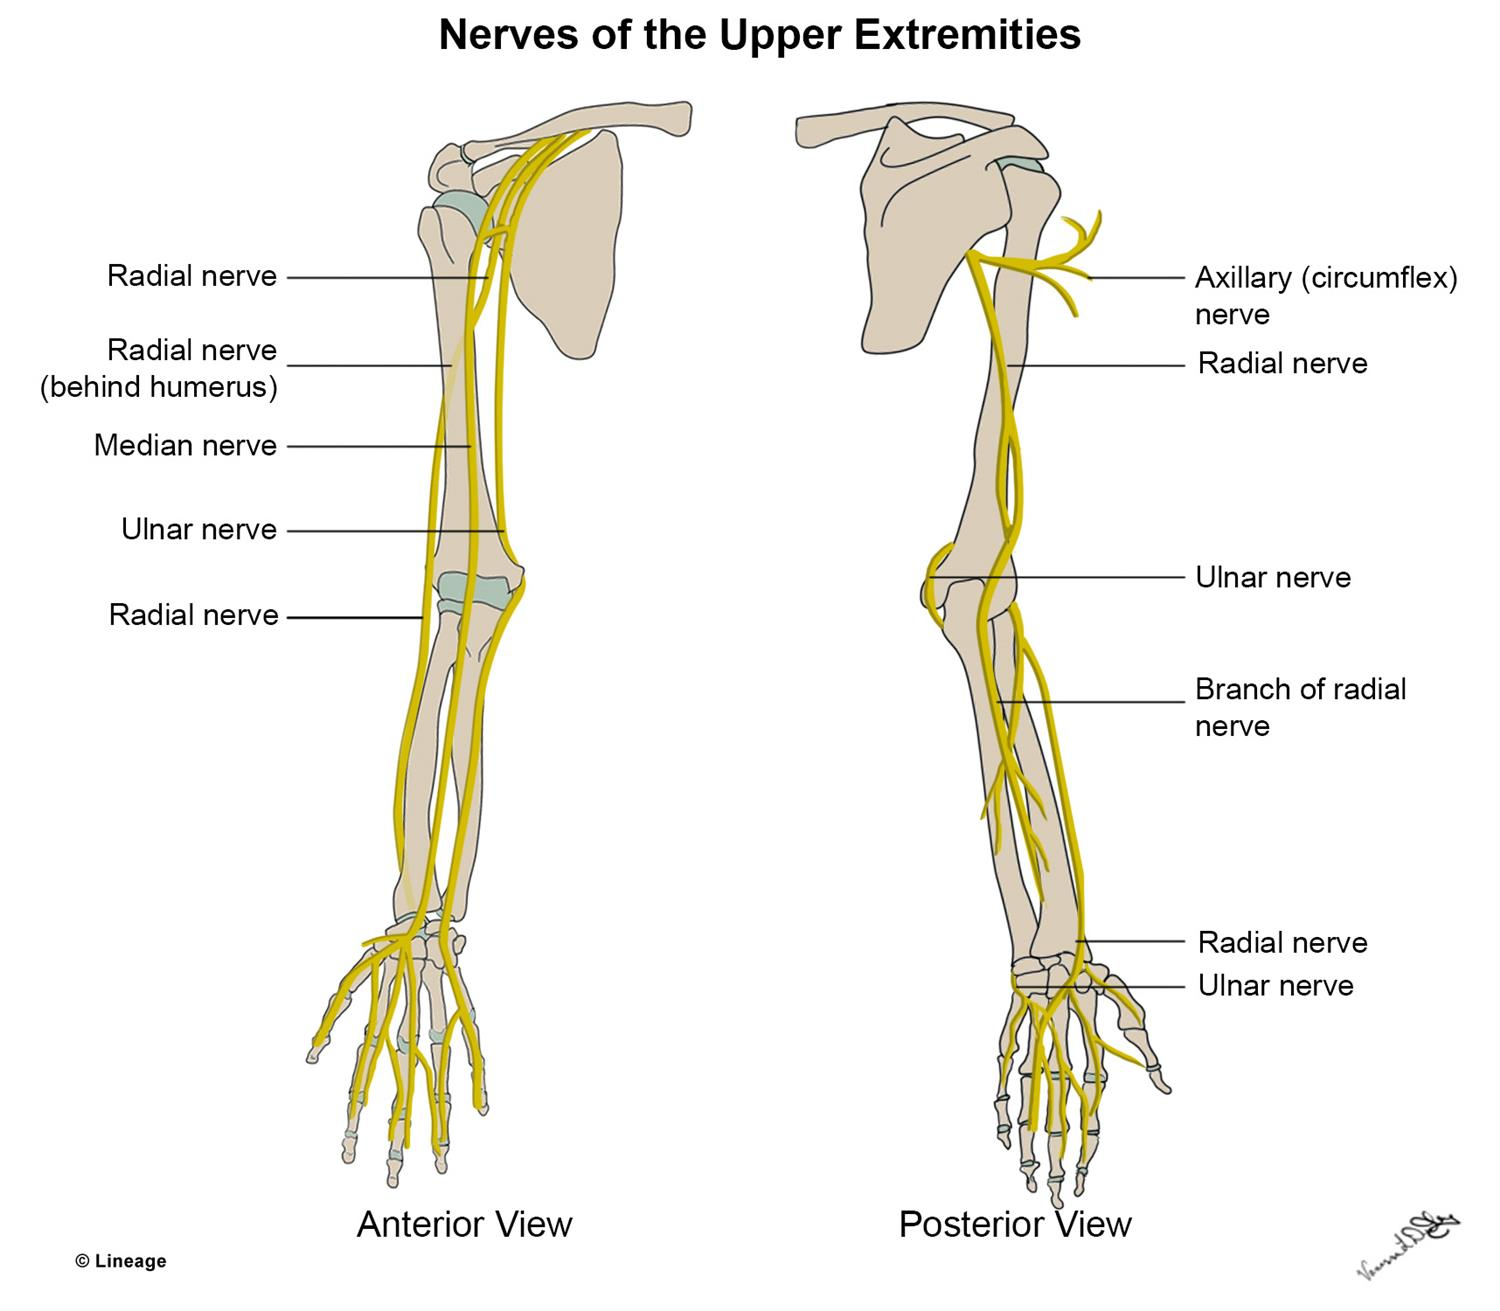 https://upload.medbullets.com/topic/112008/images/upper_extremities.jpg